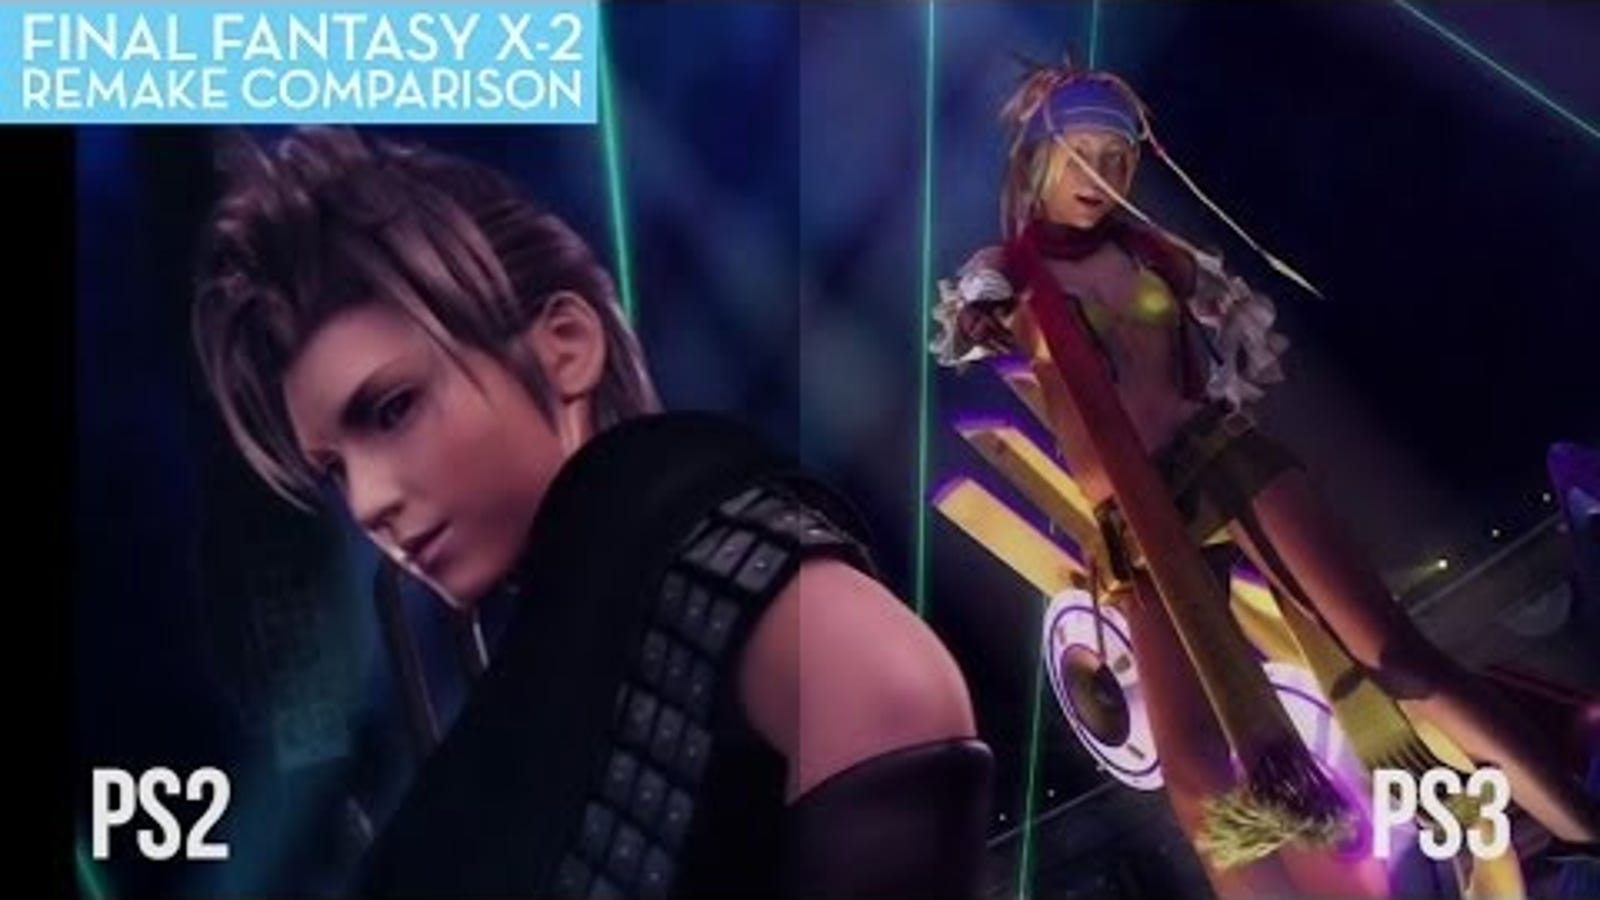 a final fantasy x 2 comparison hd vs sd. Black Bedroom Furniture Sets. Home Design Ideas